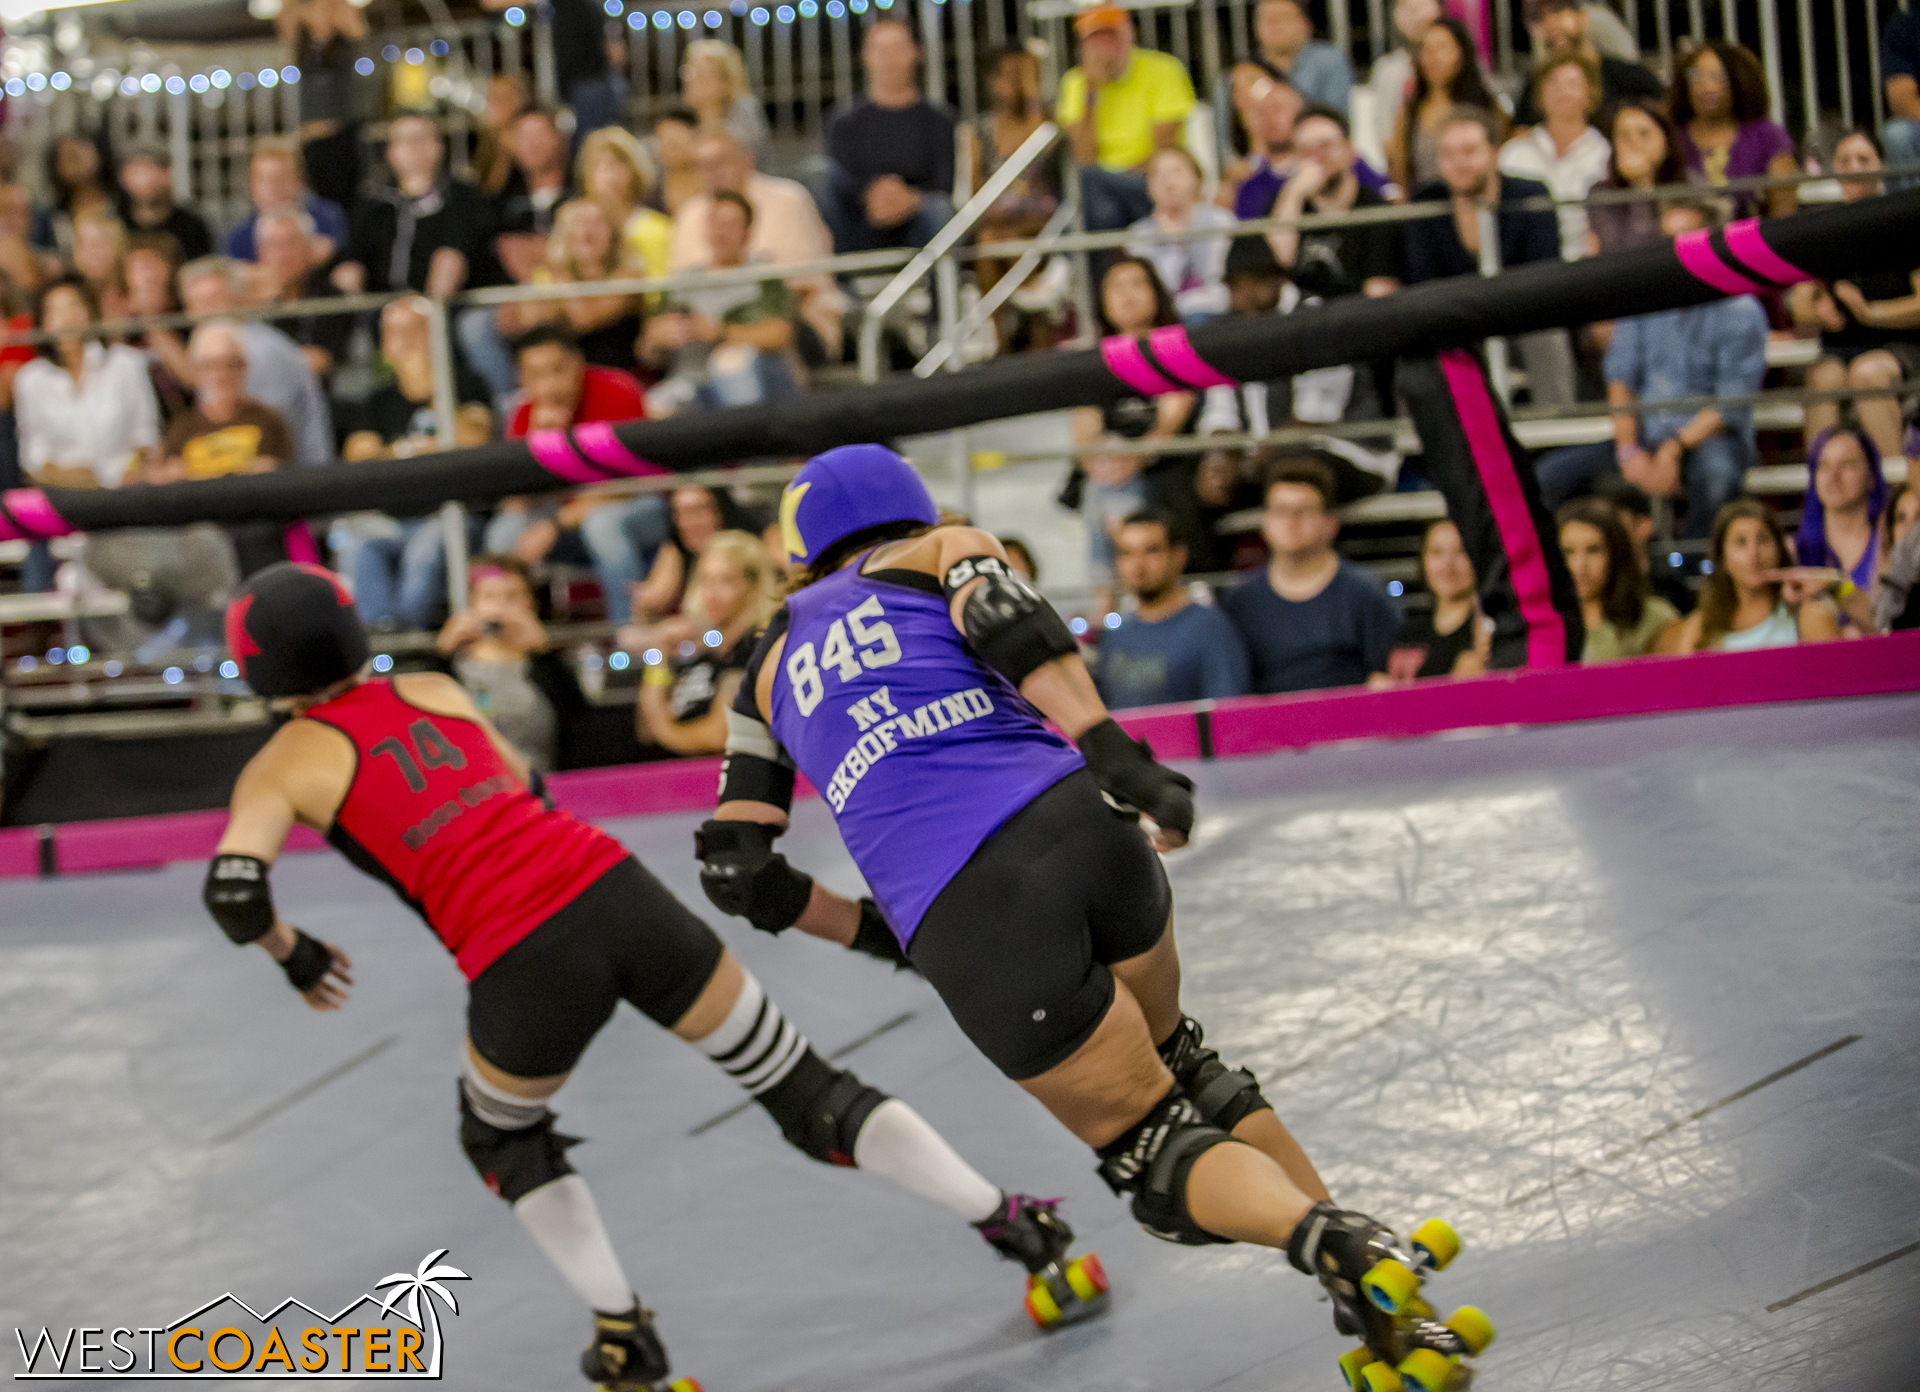 NY Sk8ofmind (get it?) chases down opposing jammer Moon Bootz.